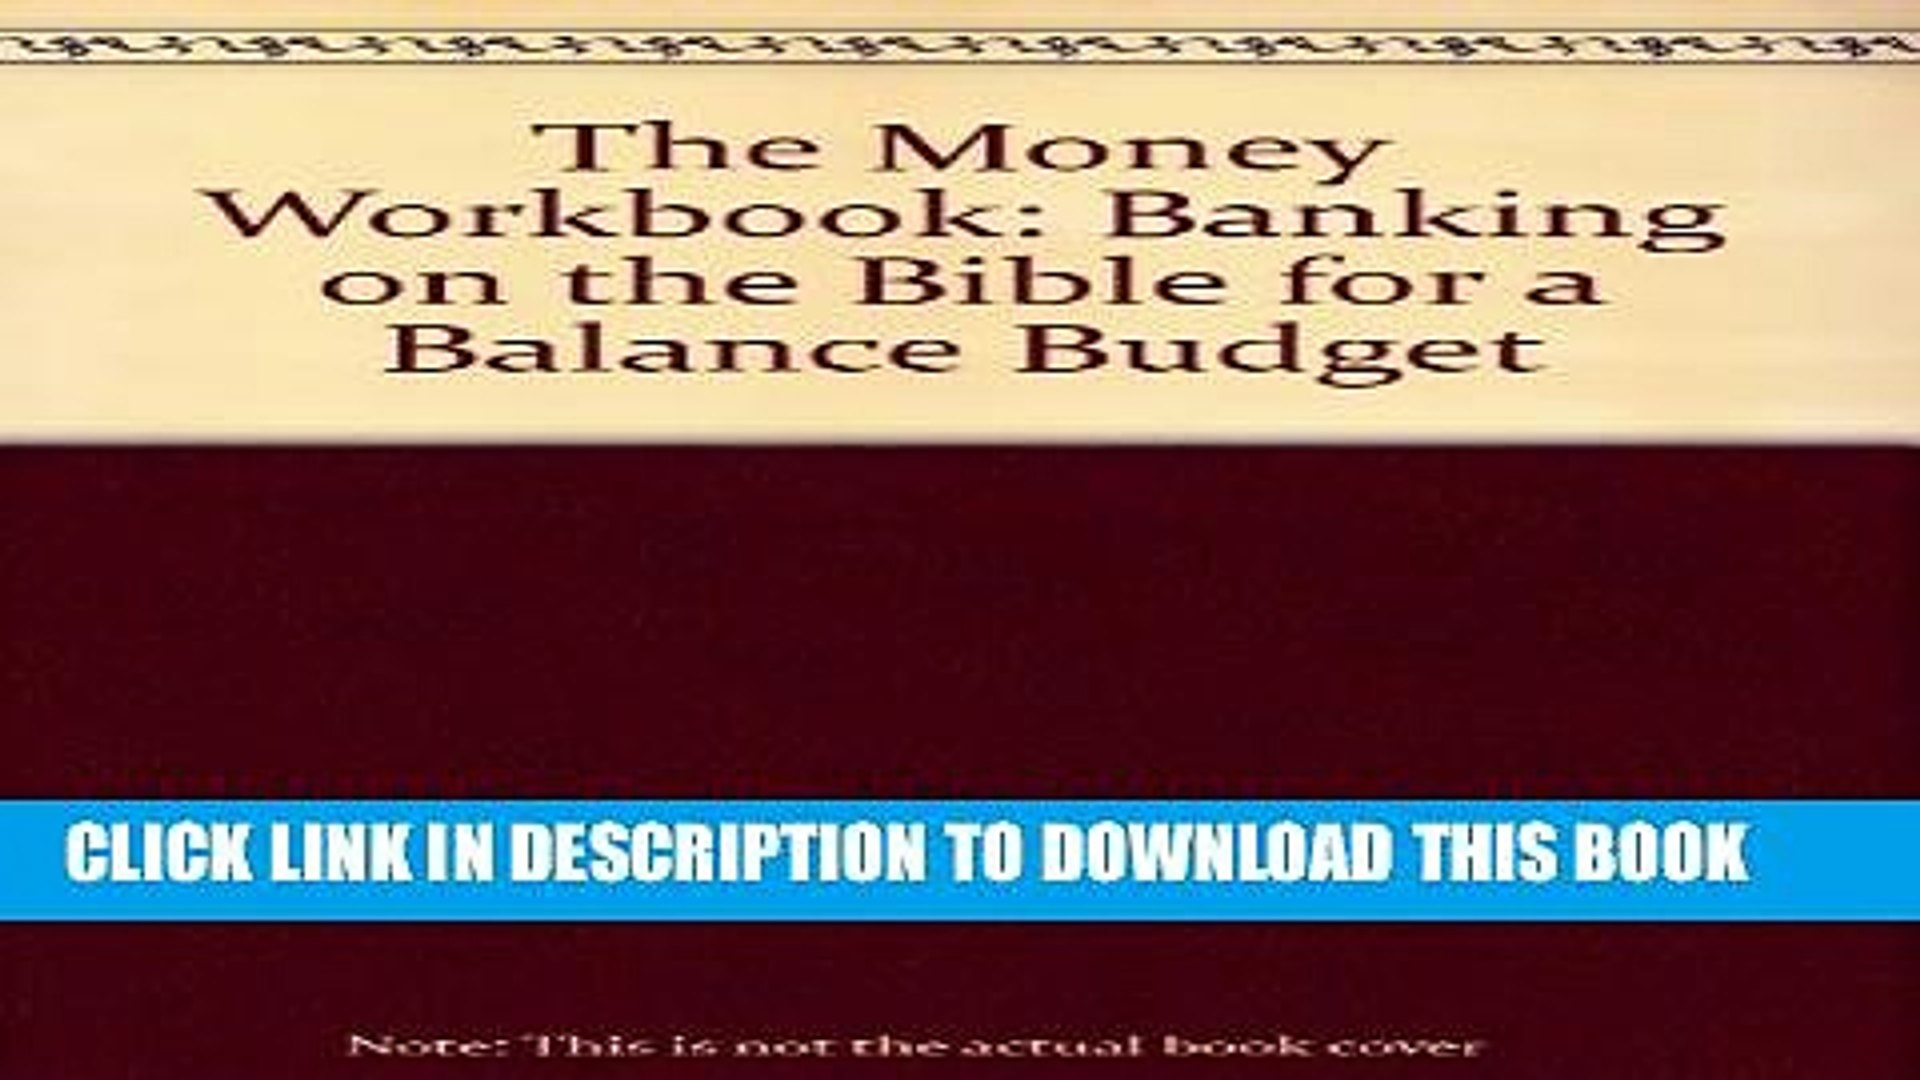 [PDF] The Money Workbook: Banking on the Bible for a Balance Budget Full Online